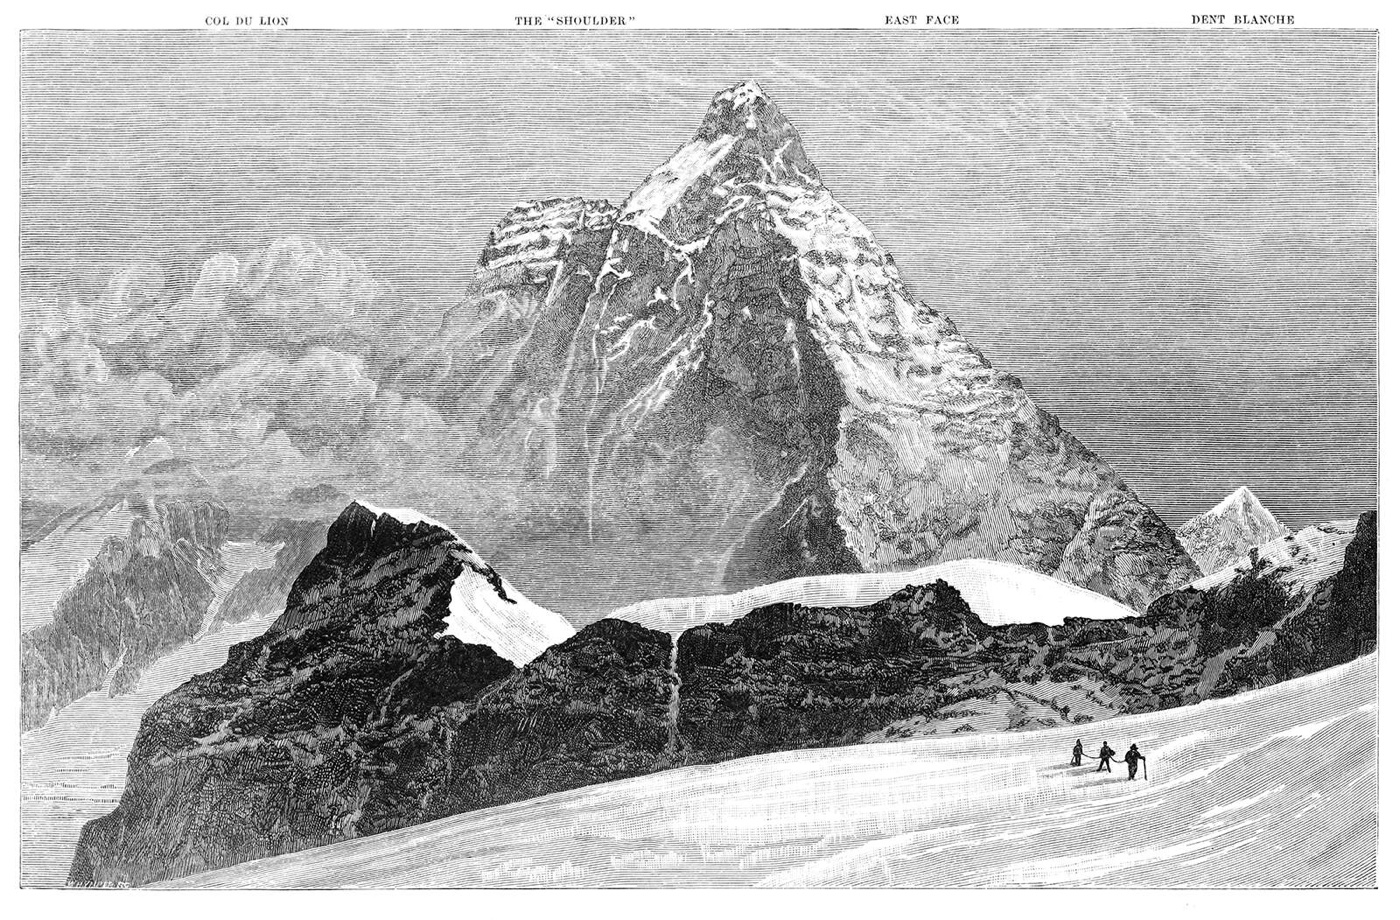 Matterhorn from near the Submit of Theodul Pass